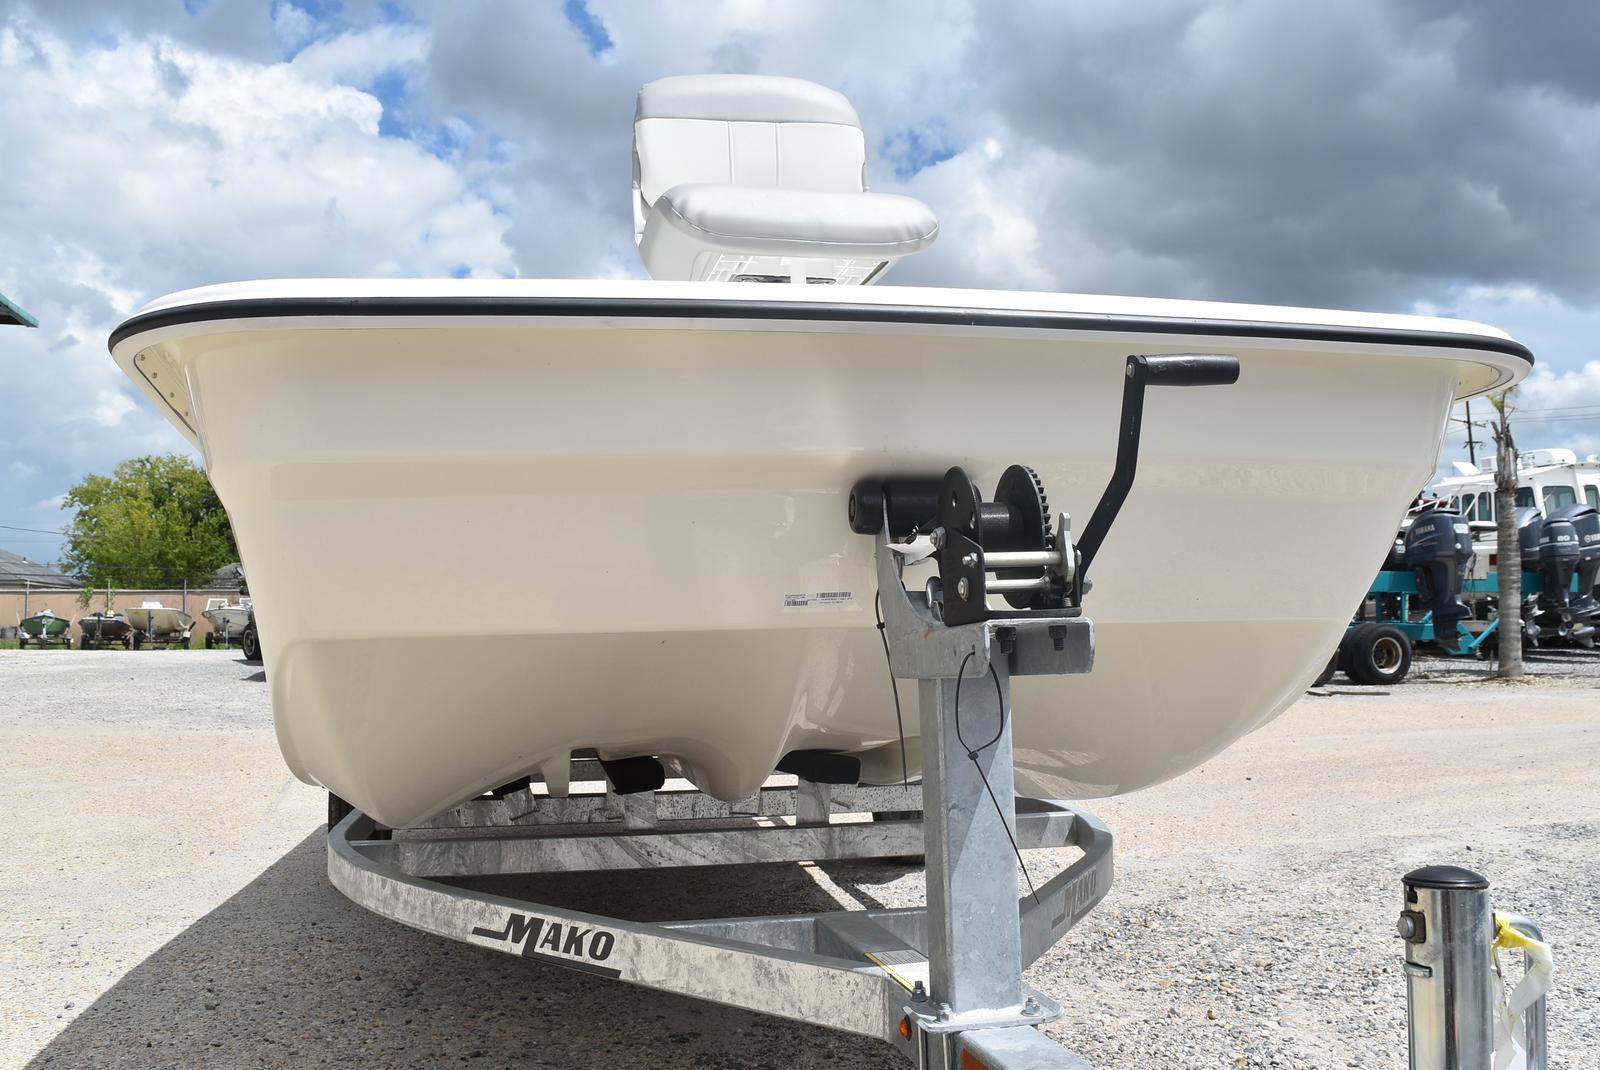 2020 Mako boat for sale, model of the boat is Pro Skiff 17, 75 ELPT & Image # 345 of 702